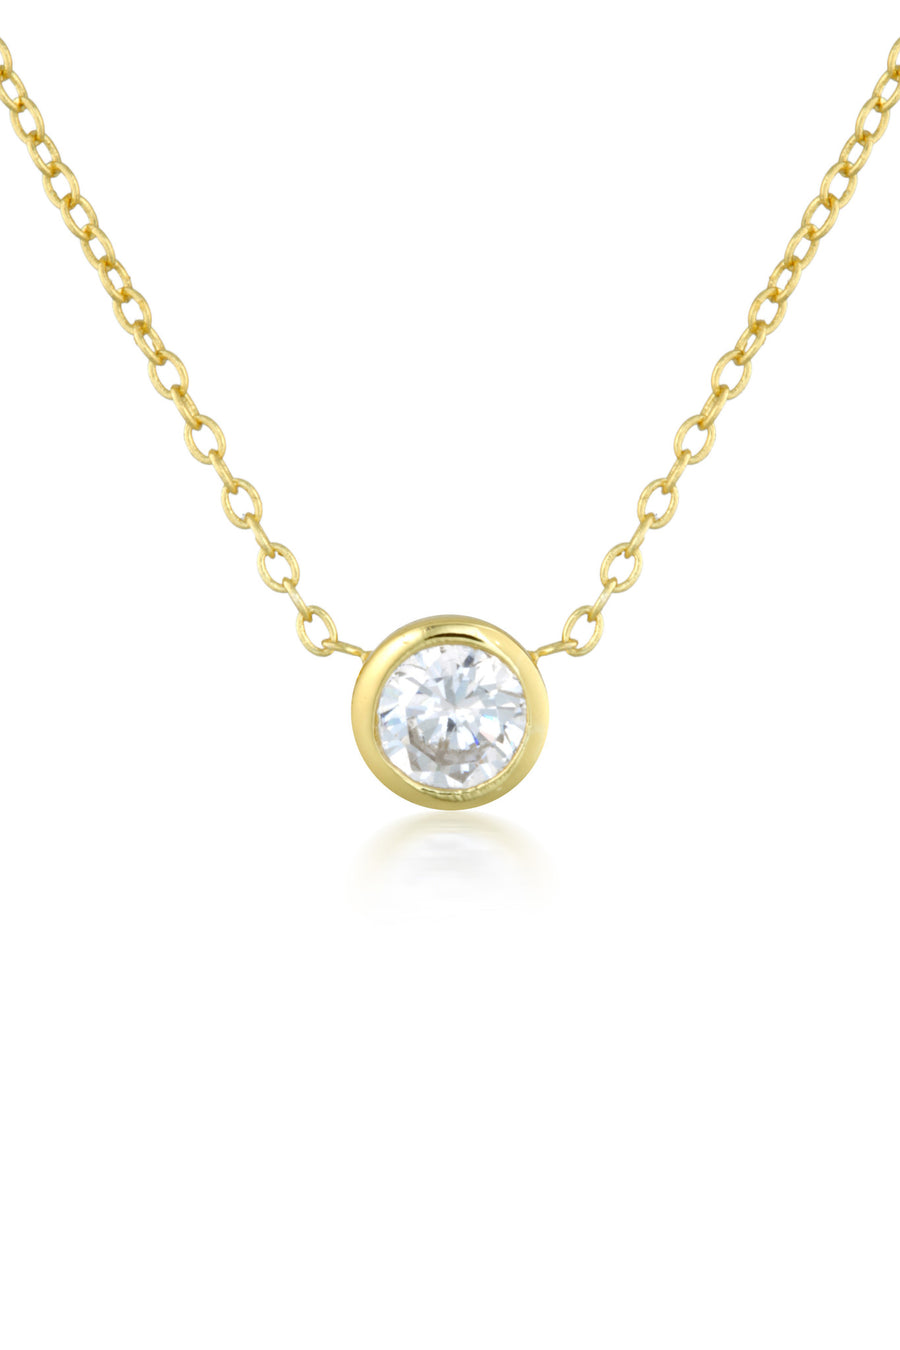 Myla Necklace in Gold